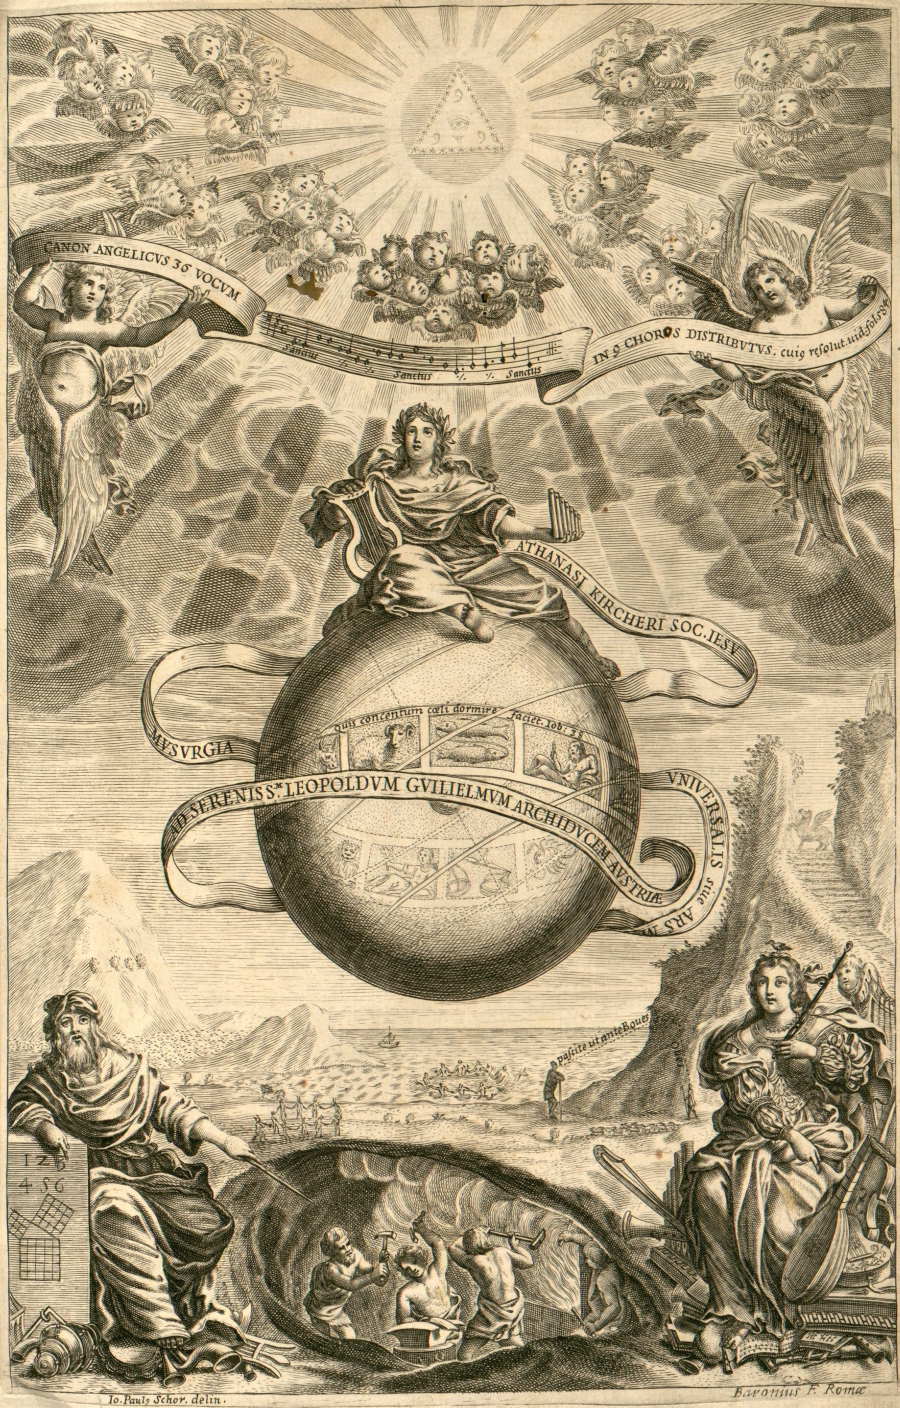 Frontispiece from Liber I of Athanasius Kircher's Musurgia Universalis, 1650. Engraved by Baronius of Rome after a drawing by John Paul Schor. See also the frontispiece of his Arithmologia  (1665) on numerical mysteries.